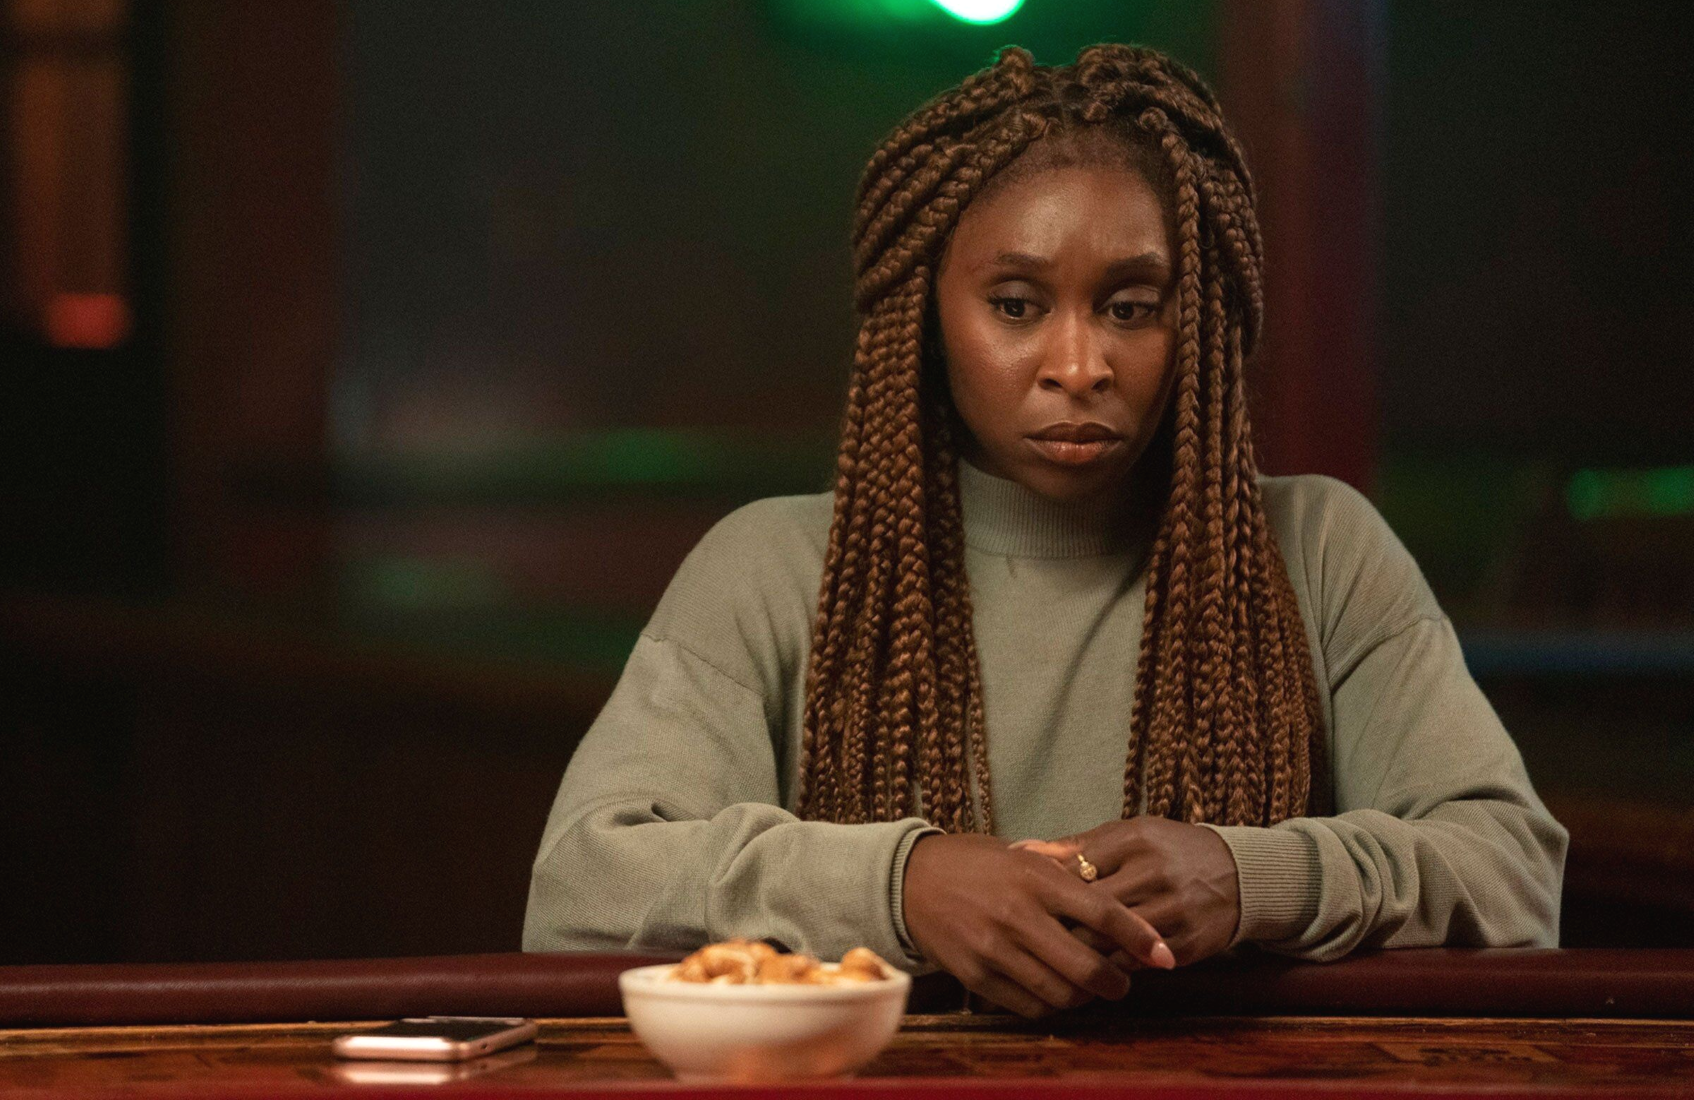 Cynthia Erivo in The Outsider. (HBO)